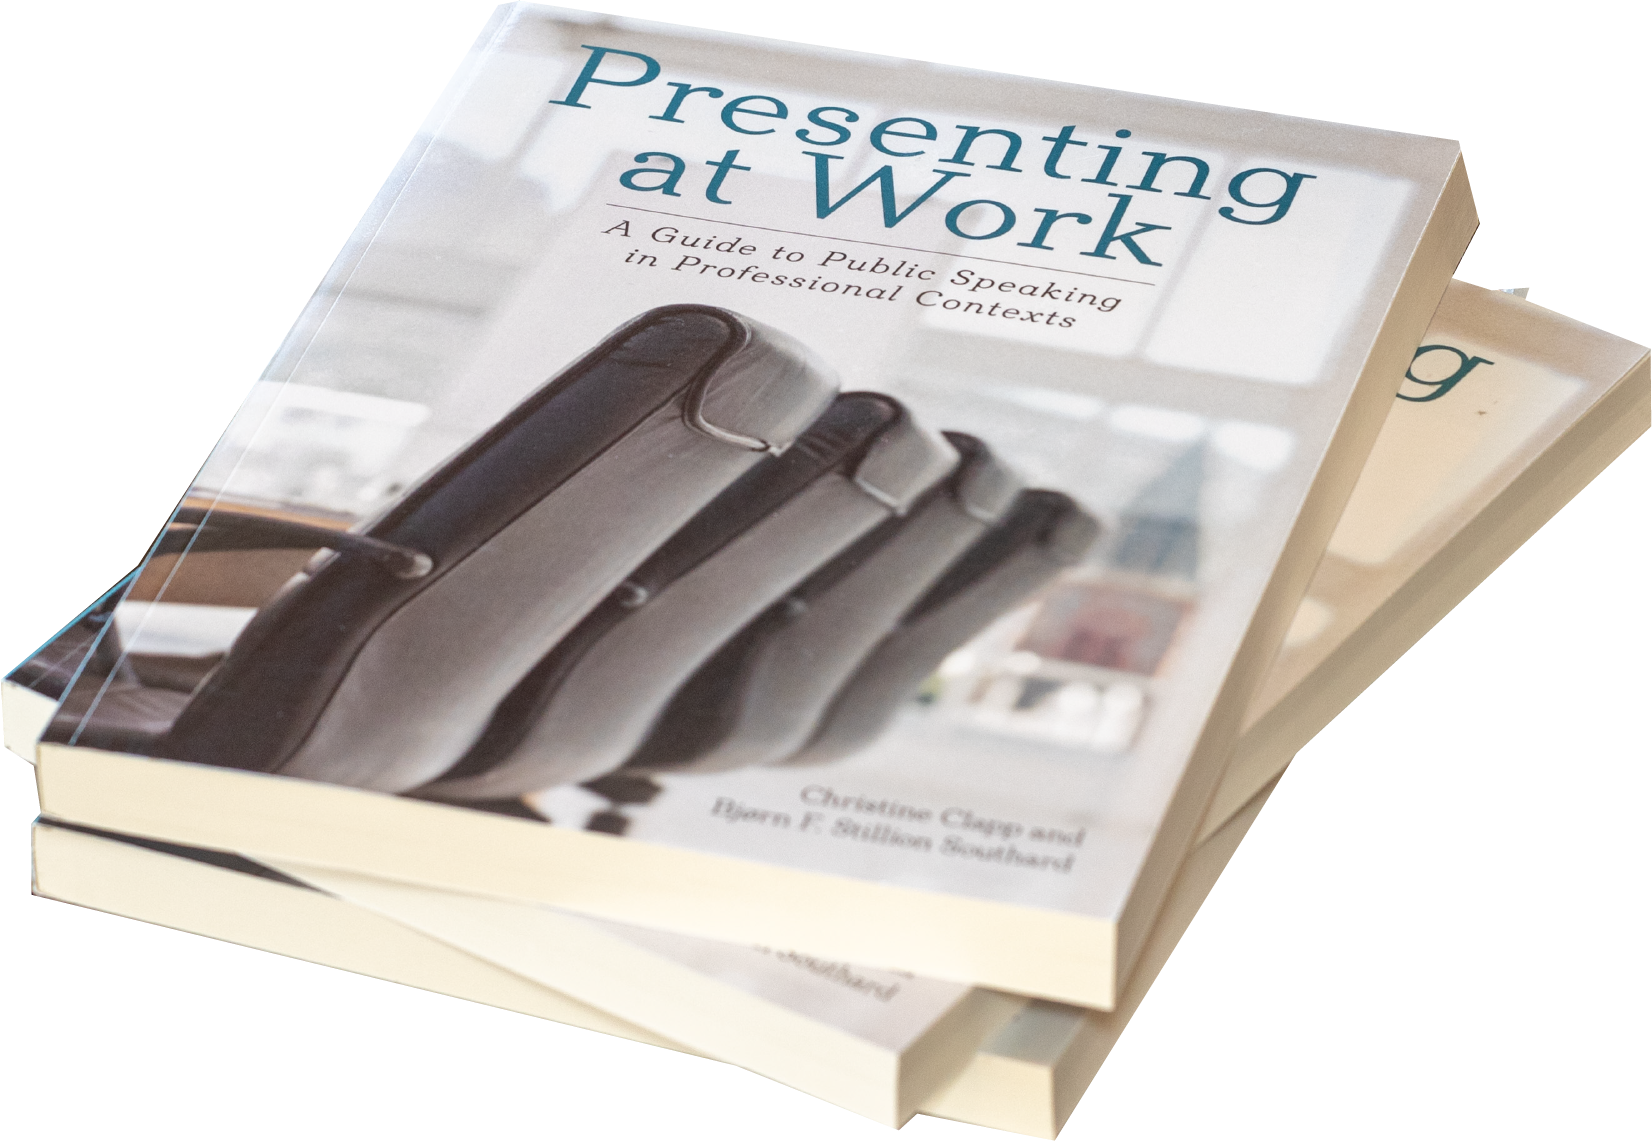 Presenting at Work: A Guide to Public Speaking in Professional Contexts